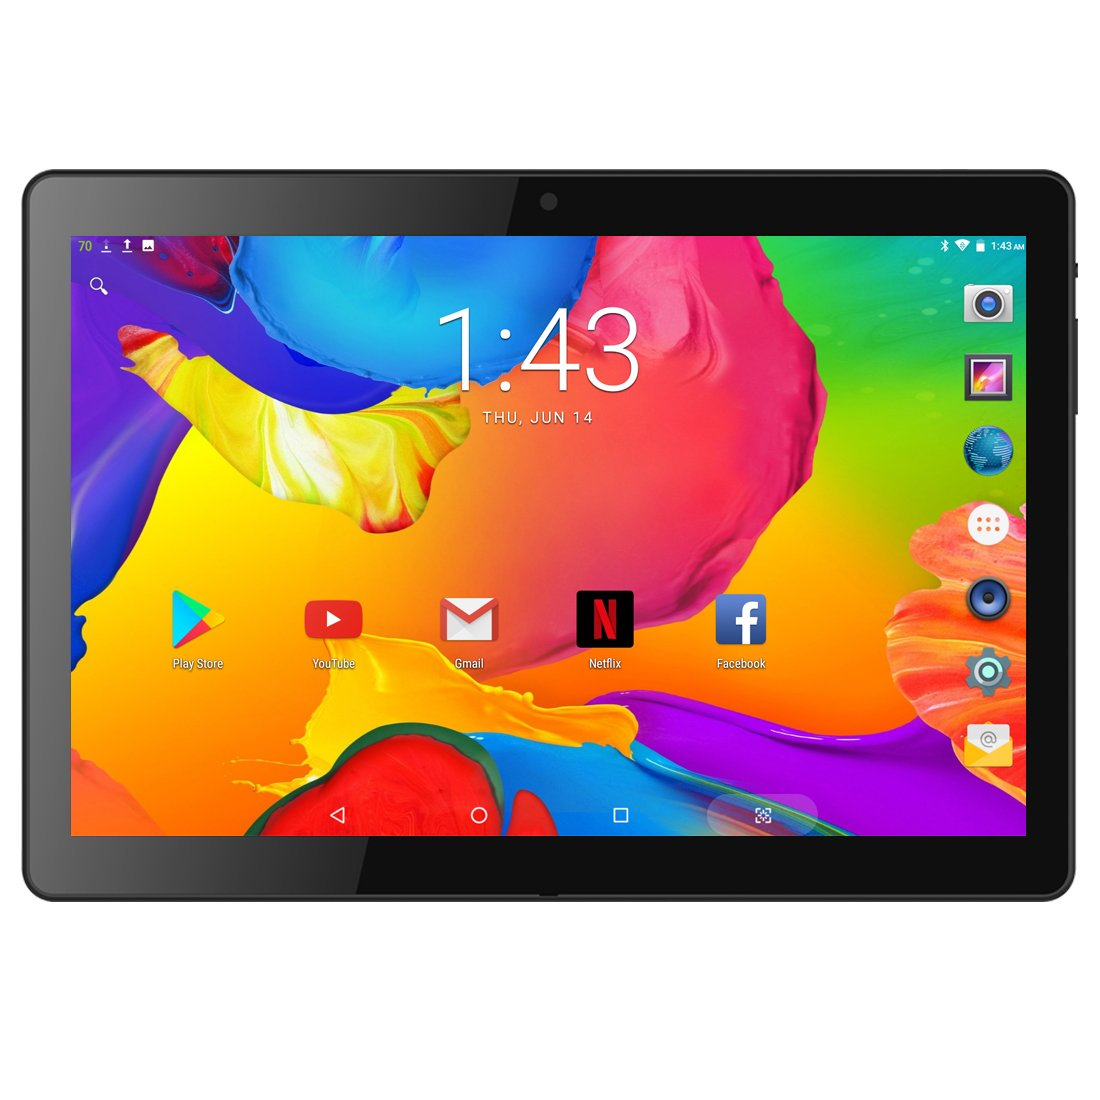 BENEVE 10.1'' Inch Tablet Android 7.0 Quad CORE Super, 2GB RAM + 16GB ROM, 1.3GHz CPU, Dual Camera, Front 2MP+Rear 5MP, Dual 5G WiFi, BT, HD IPS Screen, Play Store, Netflix Installed,Upgraded by BENEVE